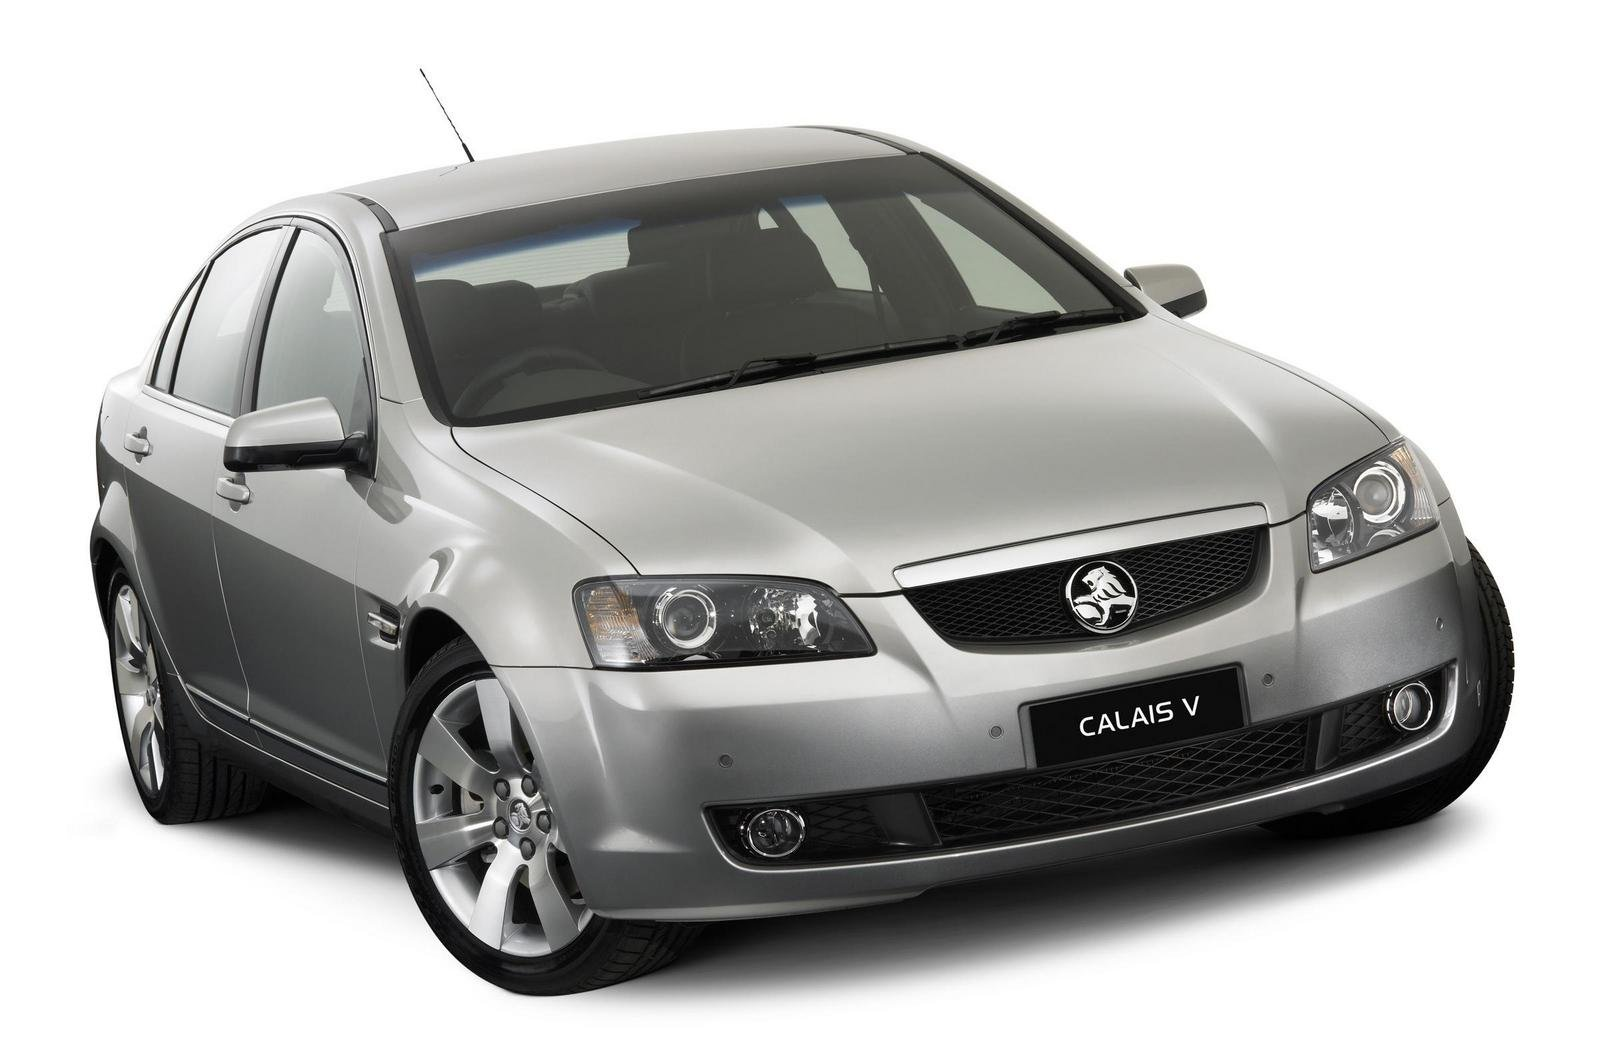 2006 holden commodore picture 86732 car review top speed for Garage bmw calais